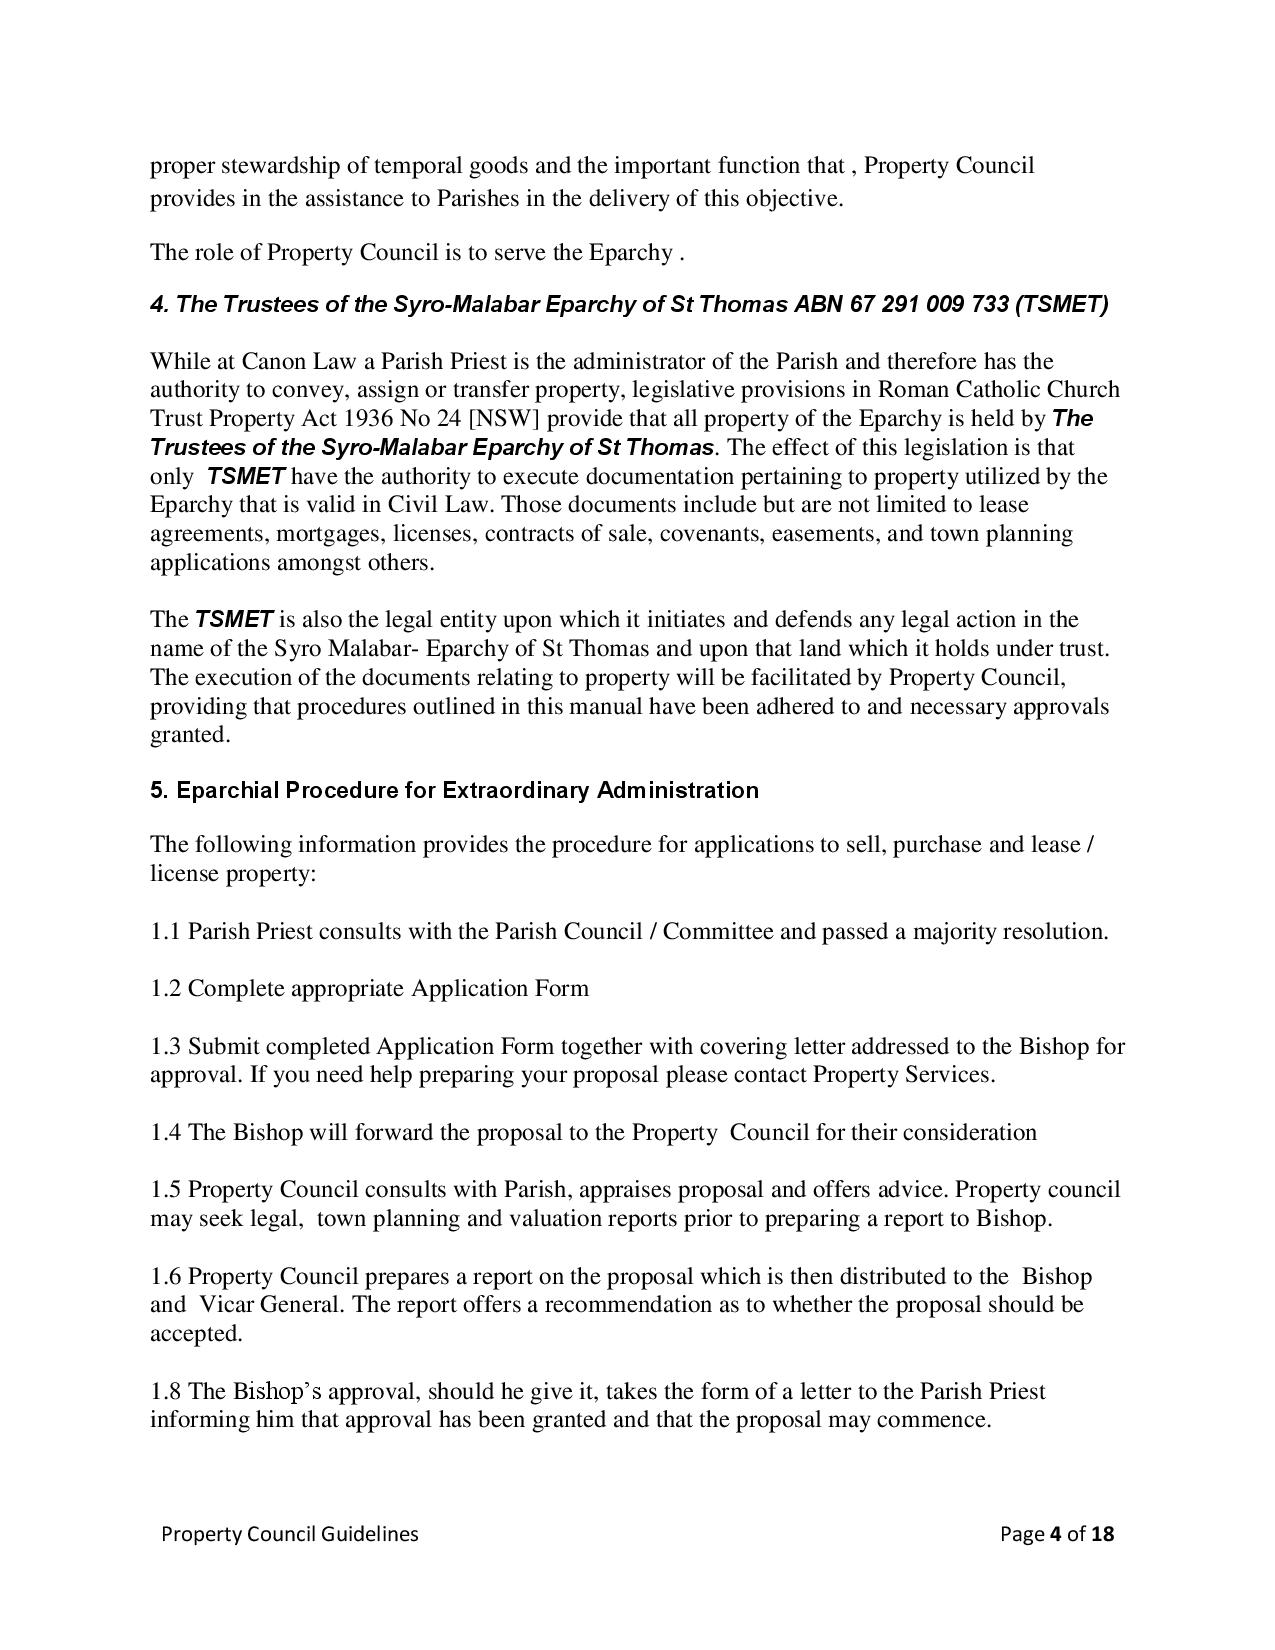 property-council-guidlines-v2-4-page-004